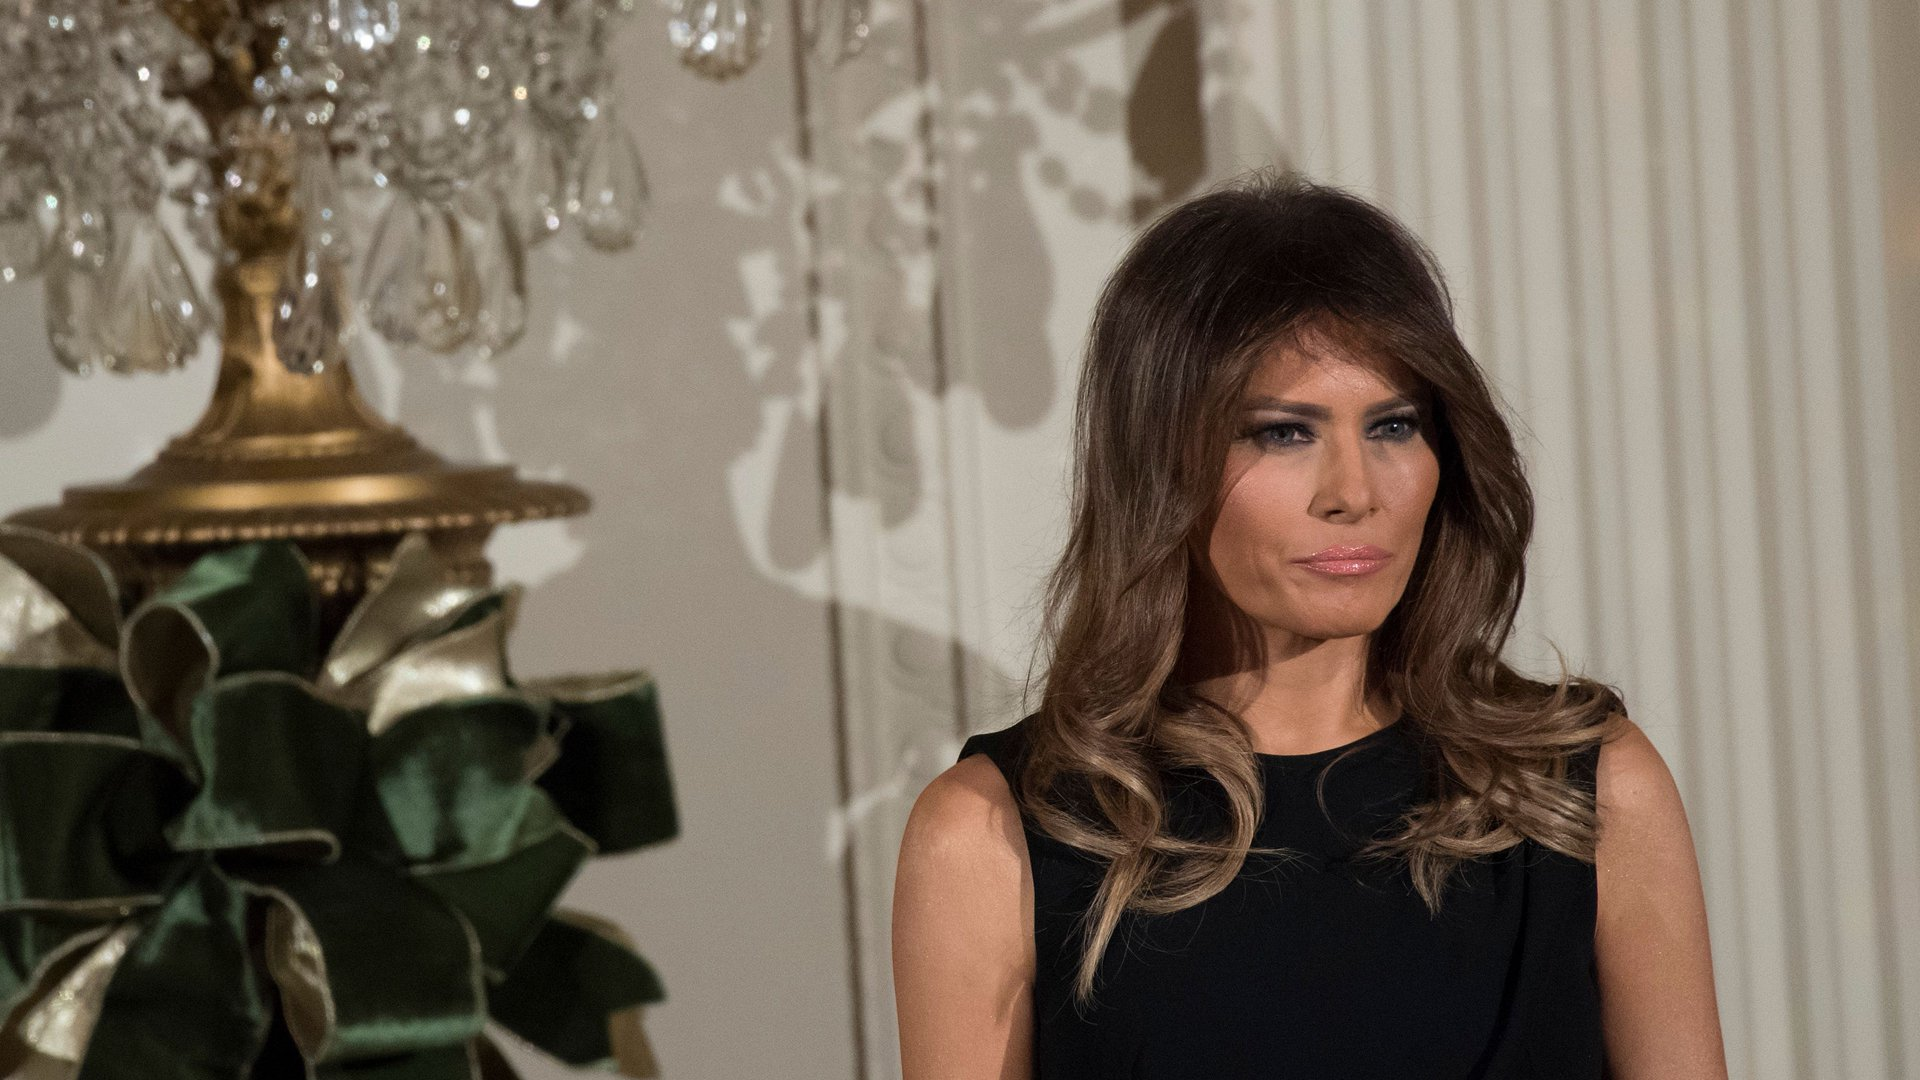 It Wont Stop Me Melania Responds to Criticism Over Cyber Bullying Platform VIDEO